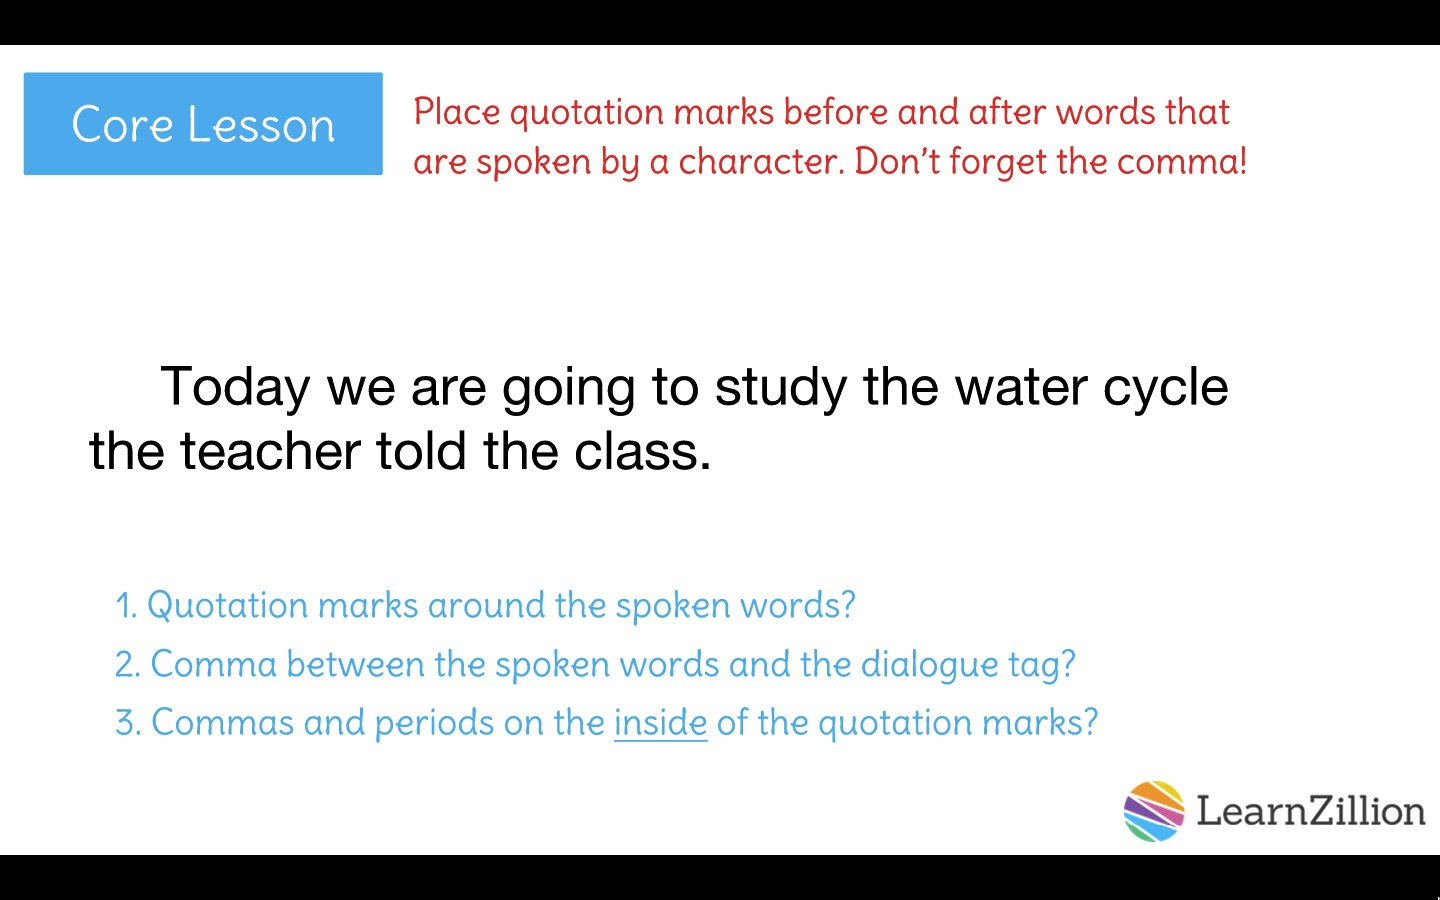 Punctuate dialogue using quotation marks and commas | LearnZillion